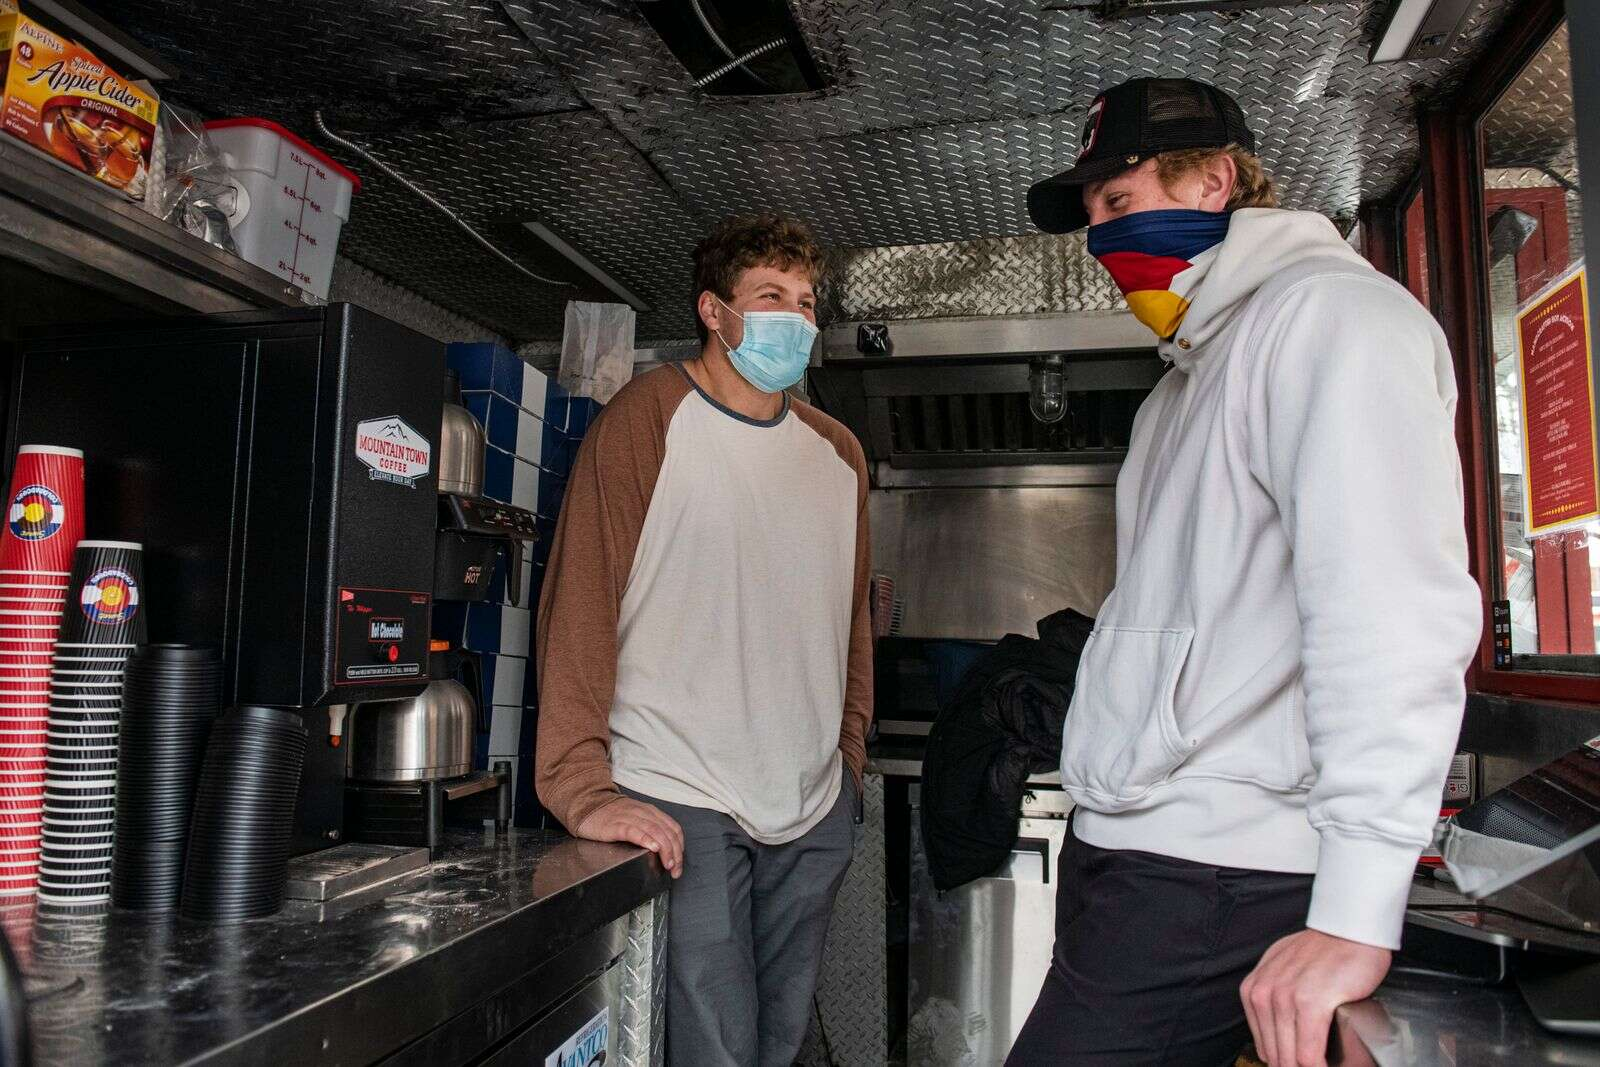 Zach Small, 17, and Eli Hunt, 17, stand in their new space where they will sell donuts and burritos in partnership with Coloradough in Aspen on Wednesday, Dec. 16, 2020. (Kelsey Brunner/The Aspen Times)